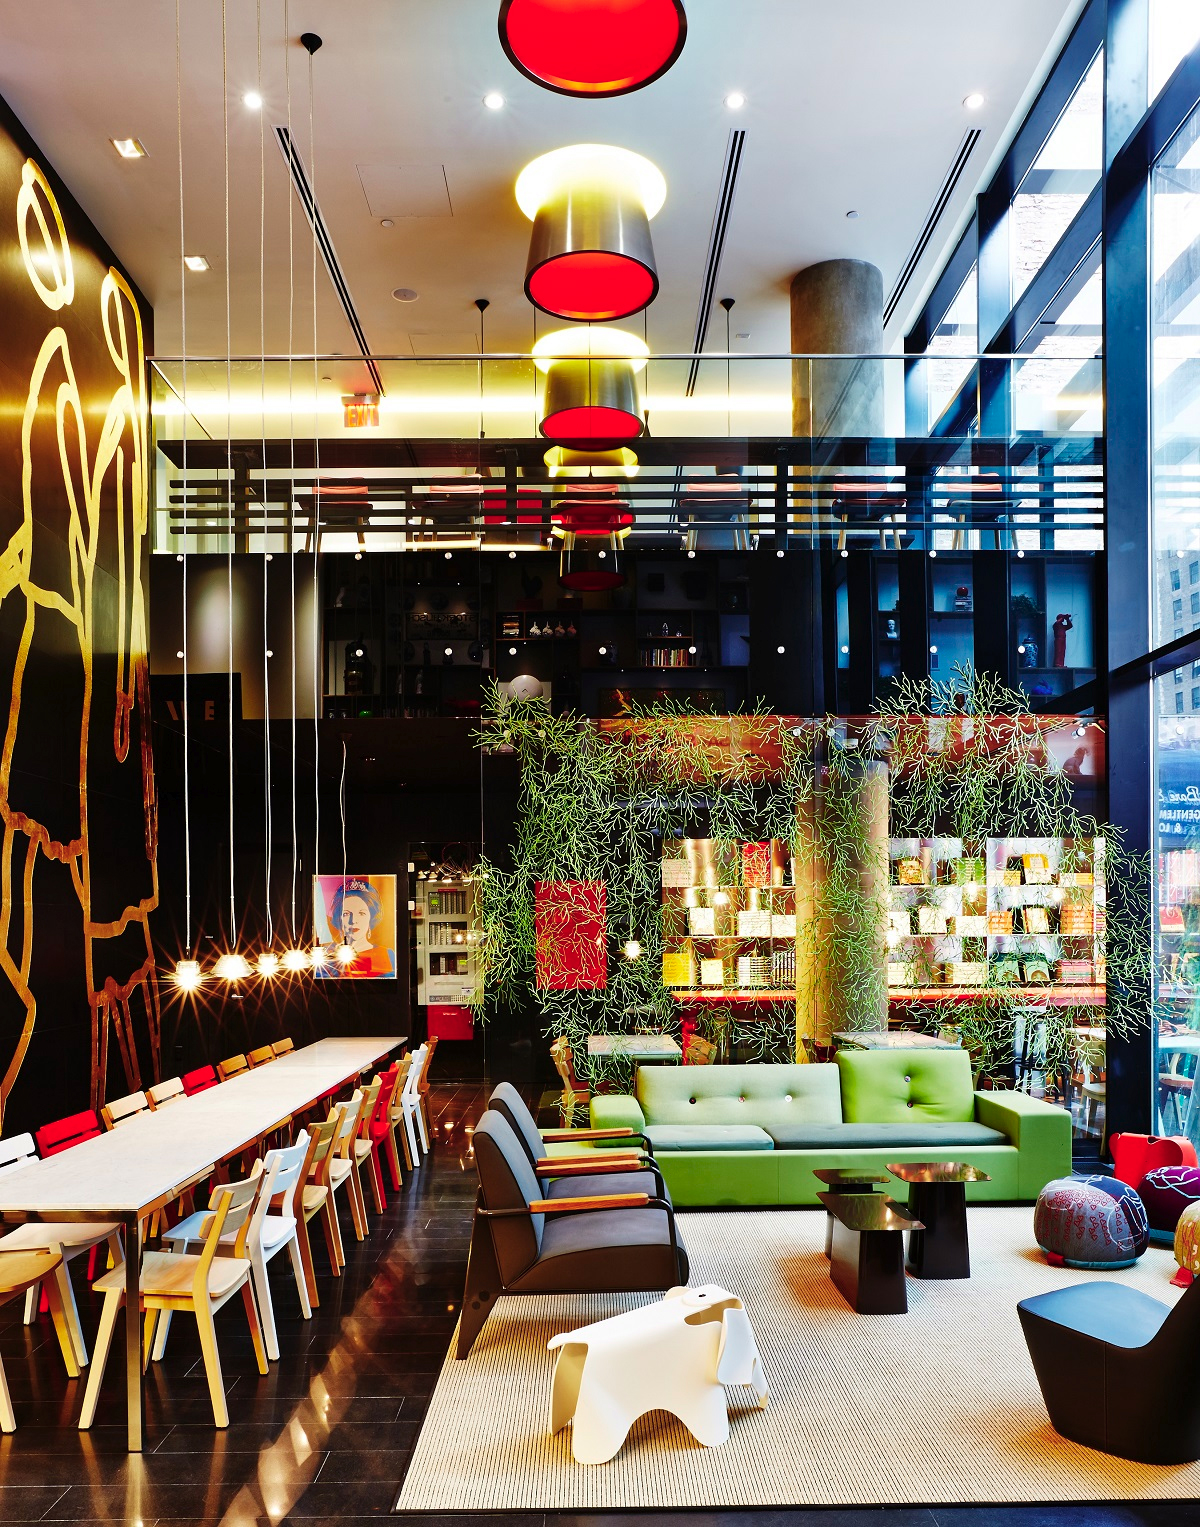 New citizenm hotels in paris and new york for New hotel design